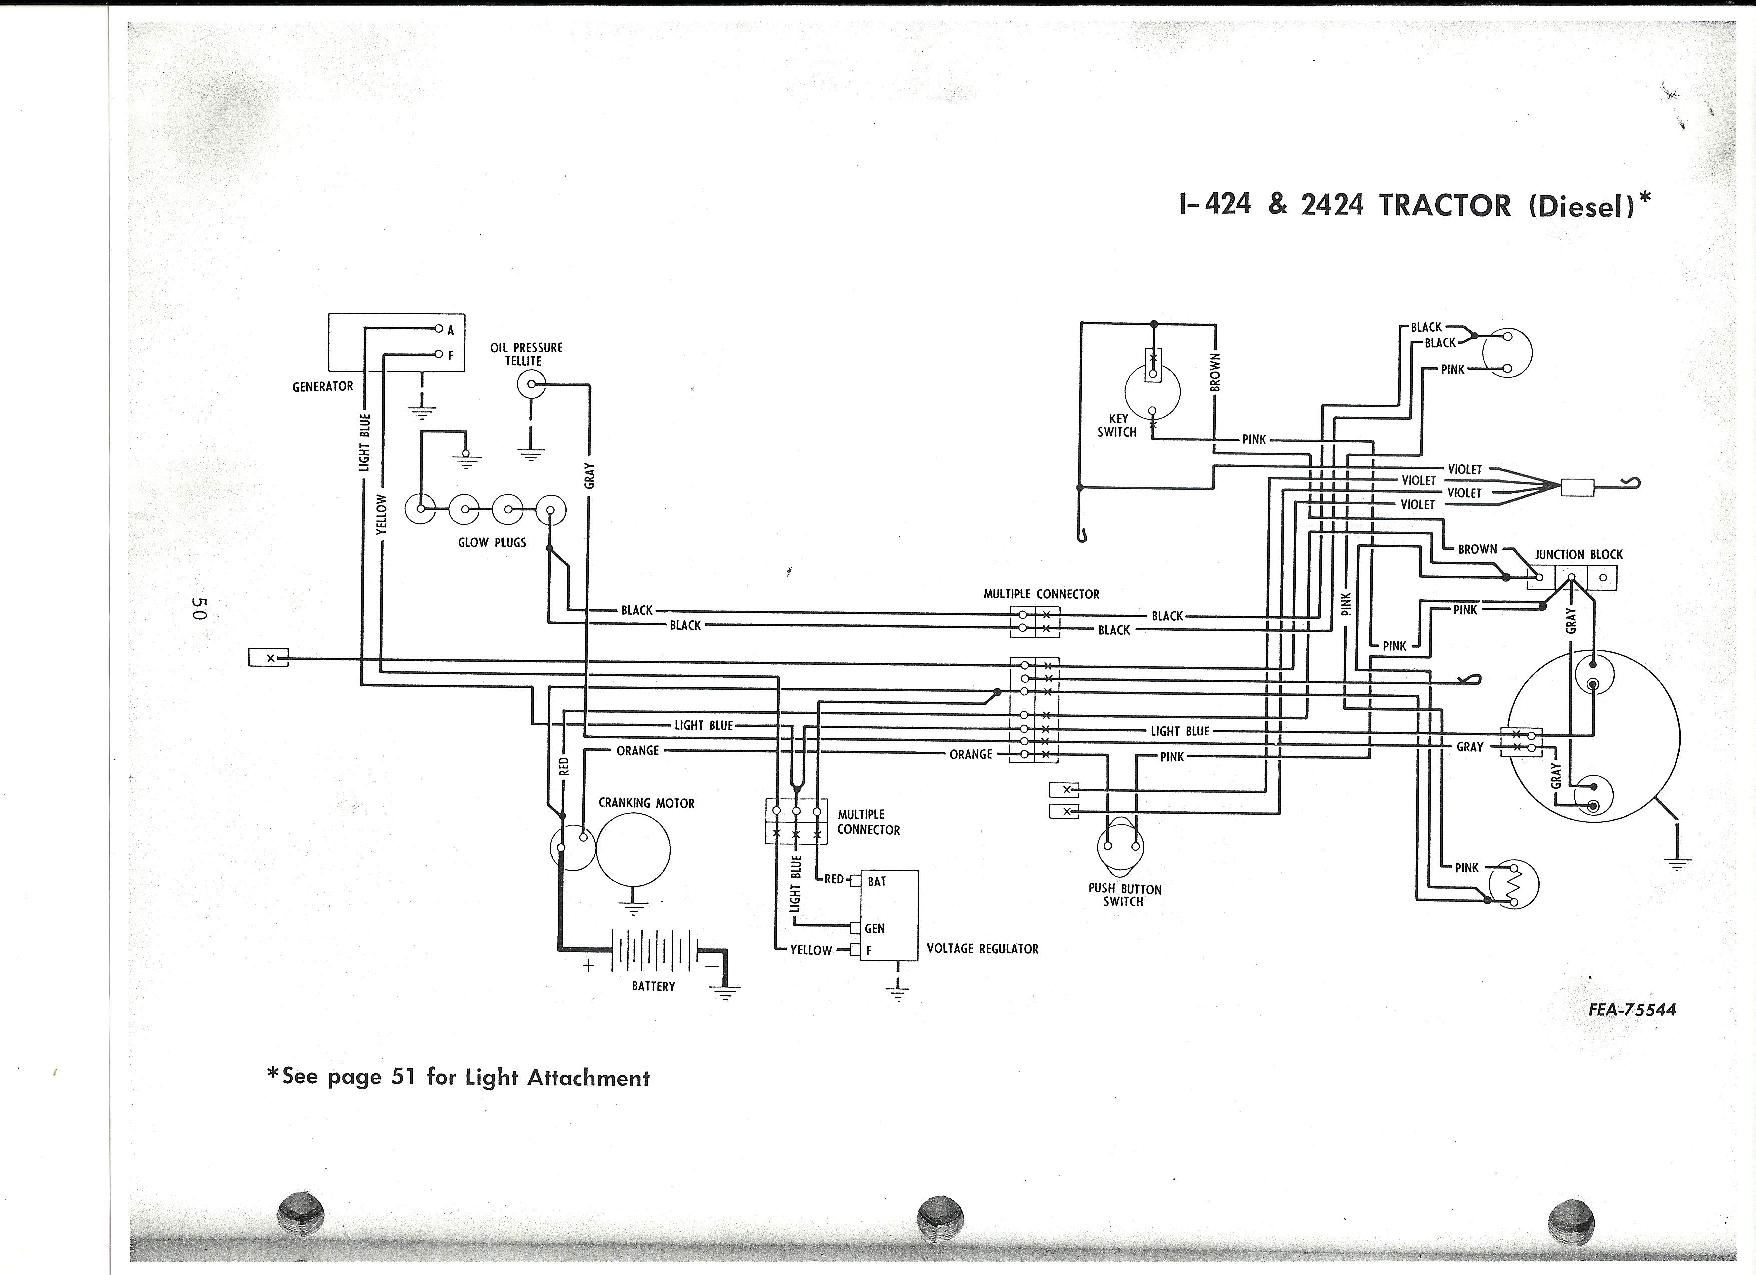 Farmall 504 Wiring Diagram Change Your Idea With Tractor Positive Ground For Basic Simple Diagrams Rh 93 Kamikaze187 De 6 Volt Ignition Switch